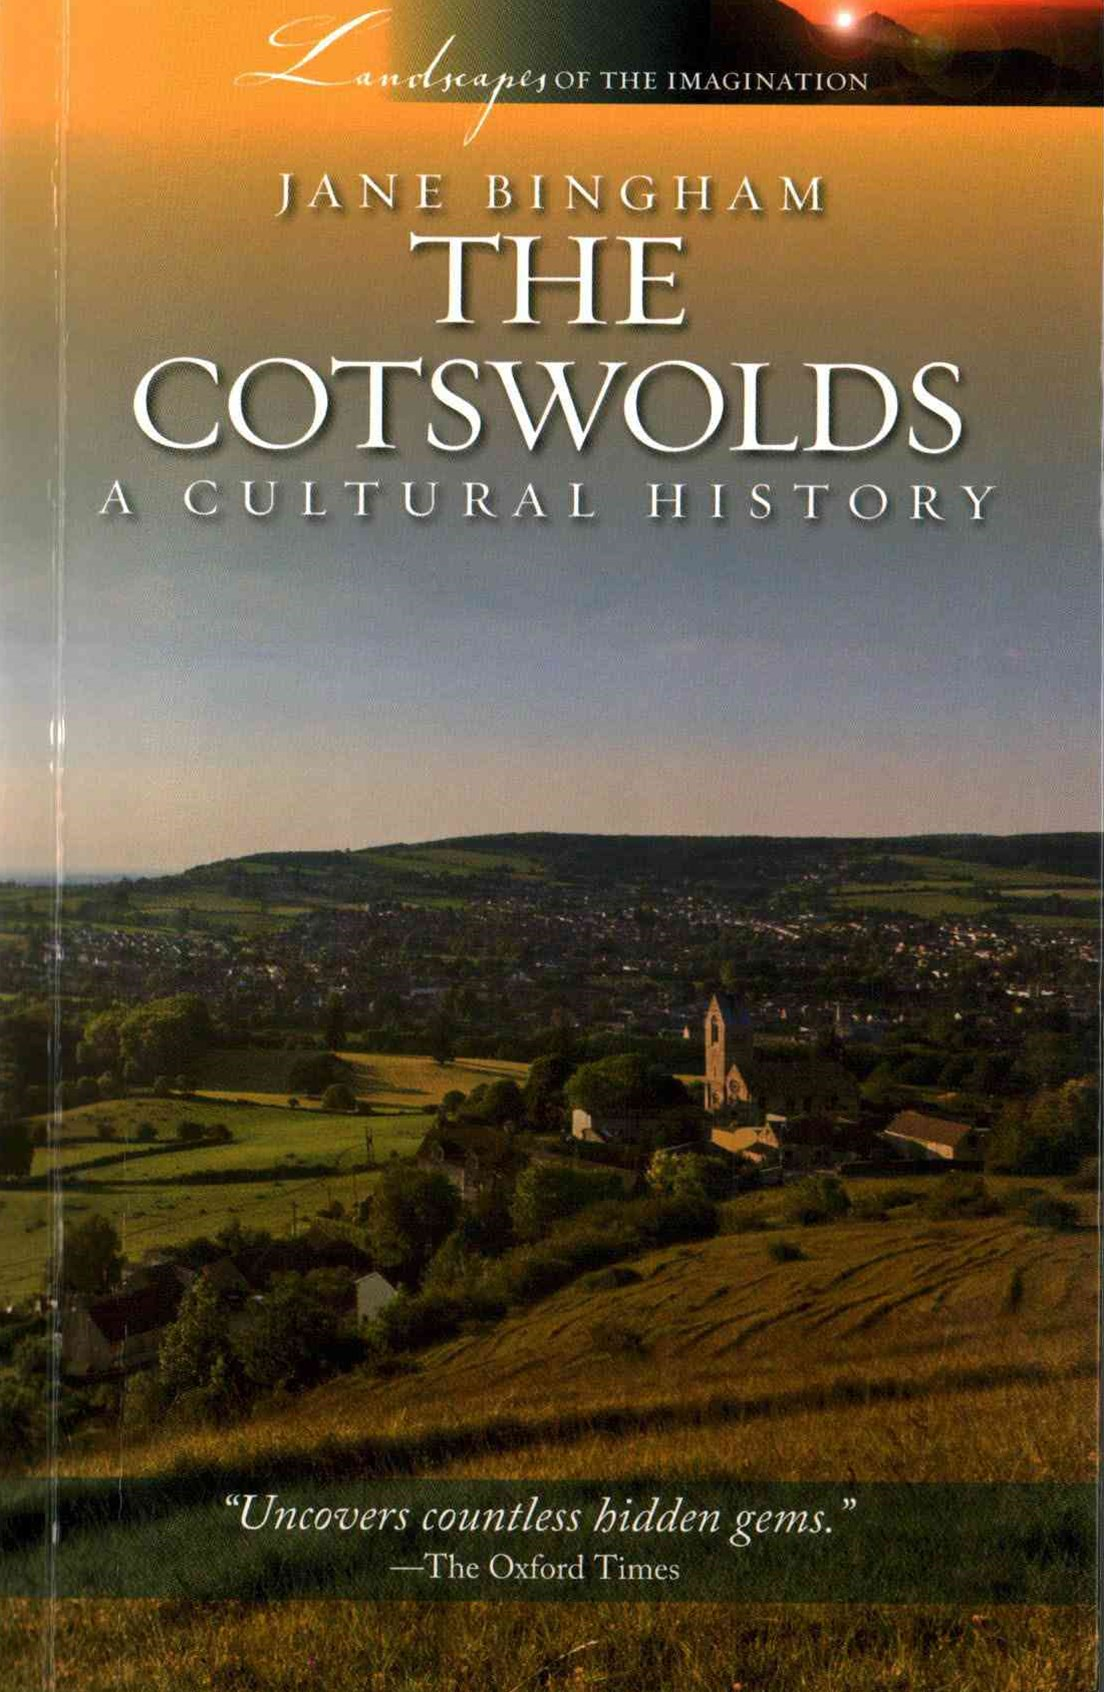 Cotswolds: A Cultural History